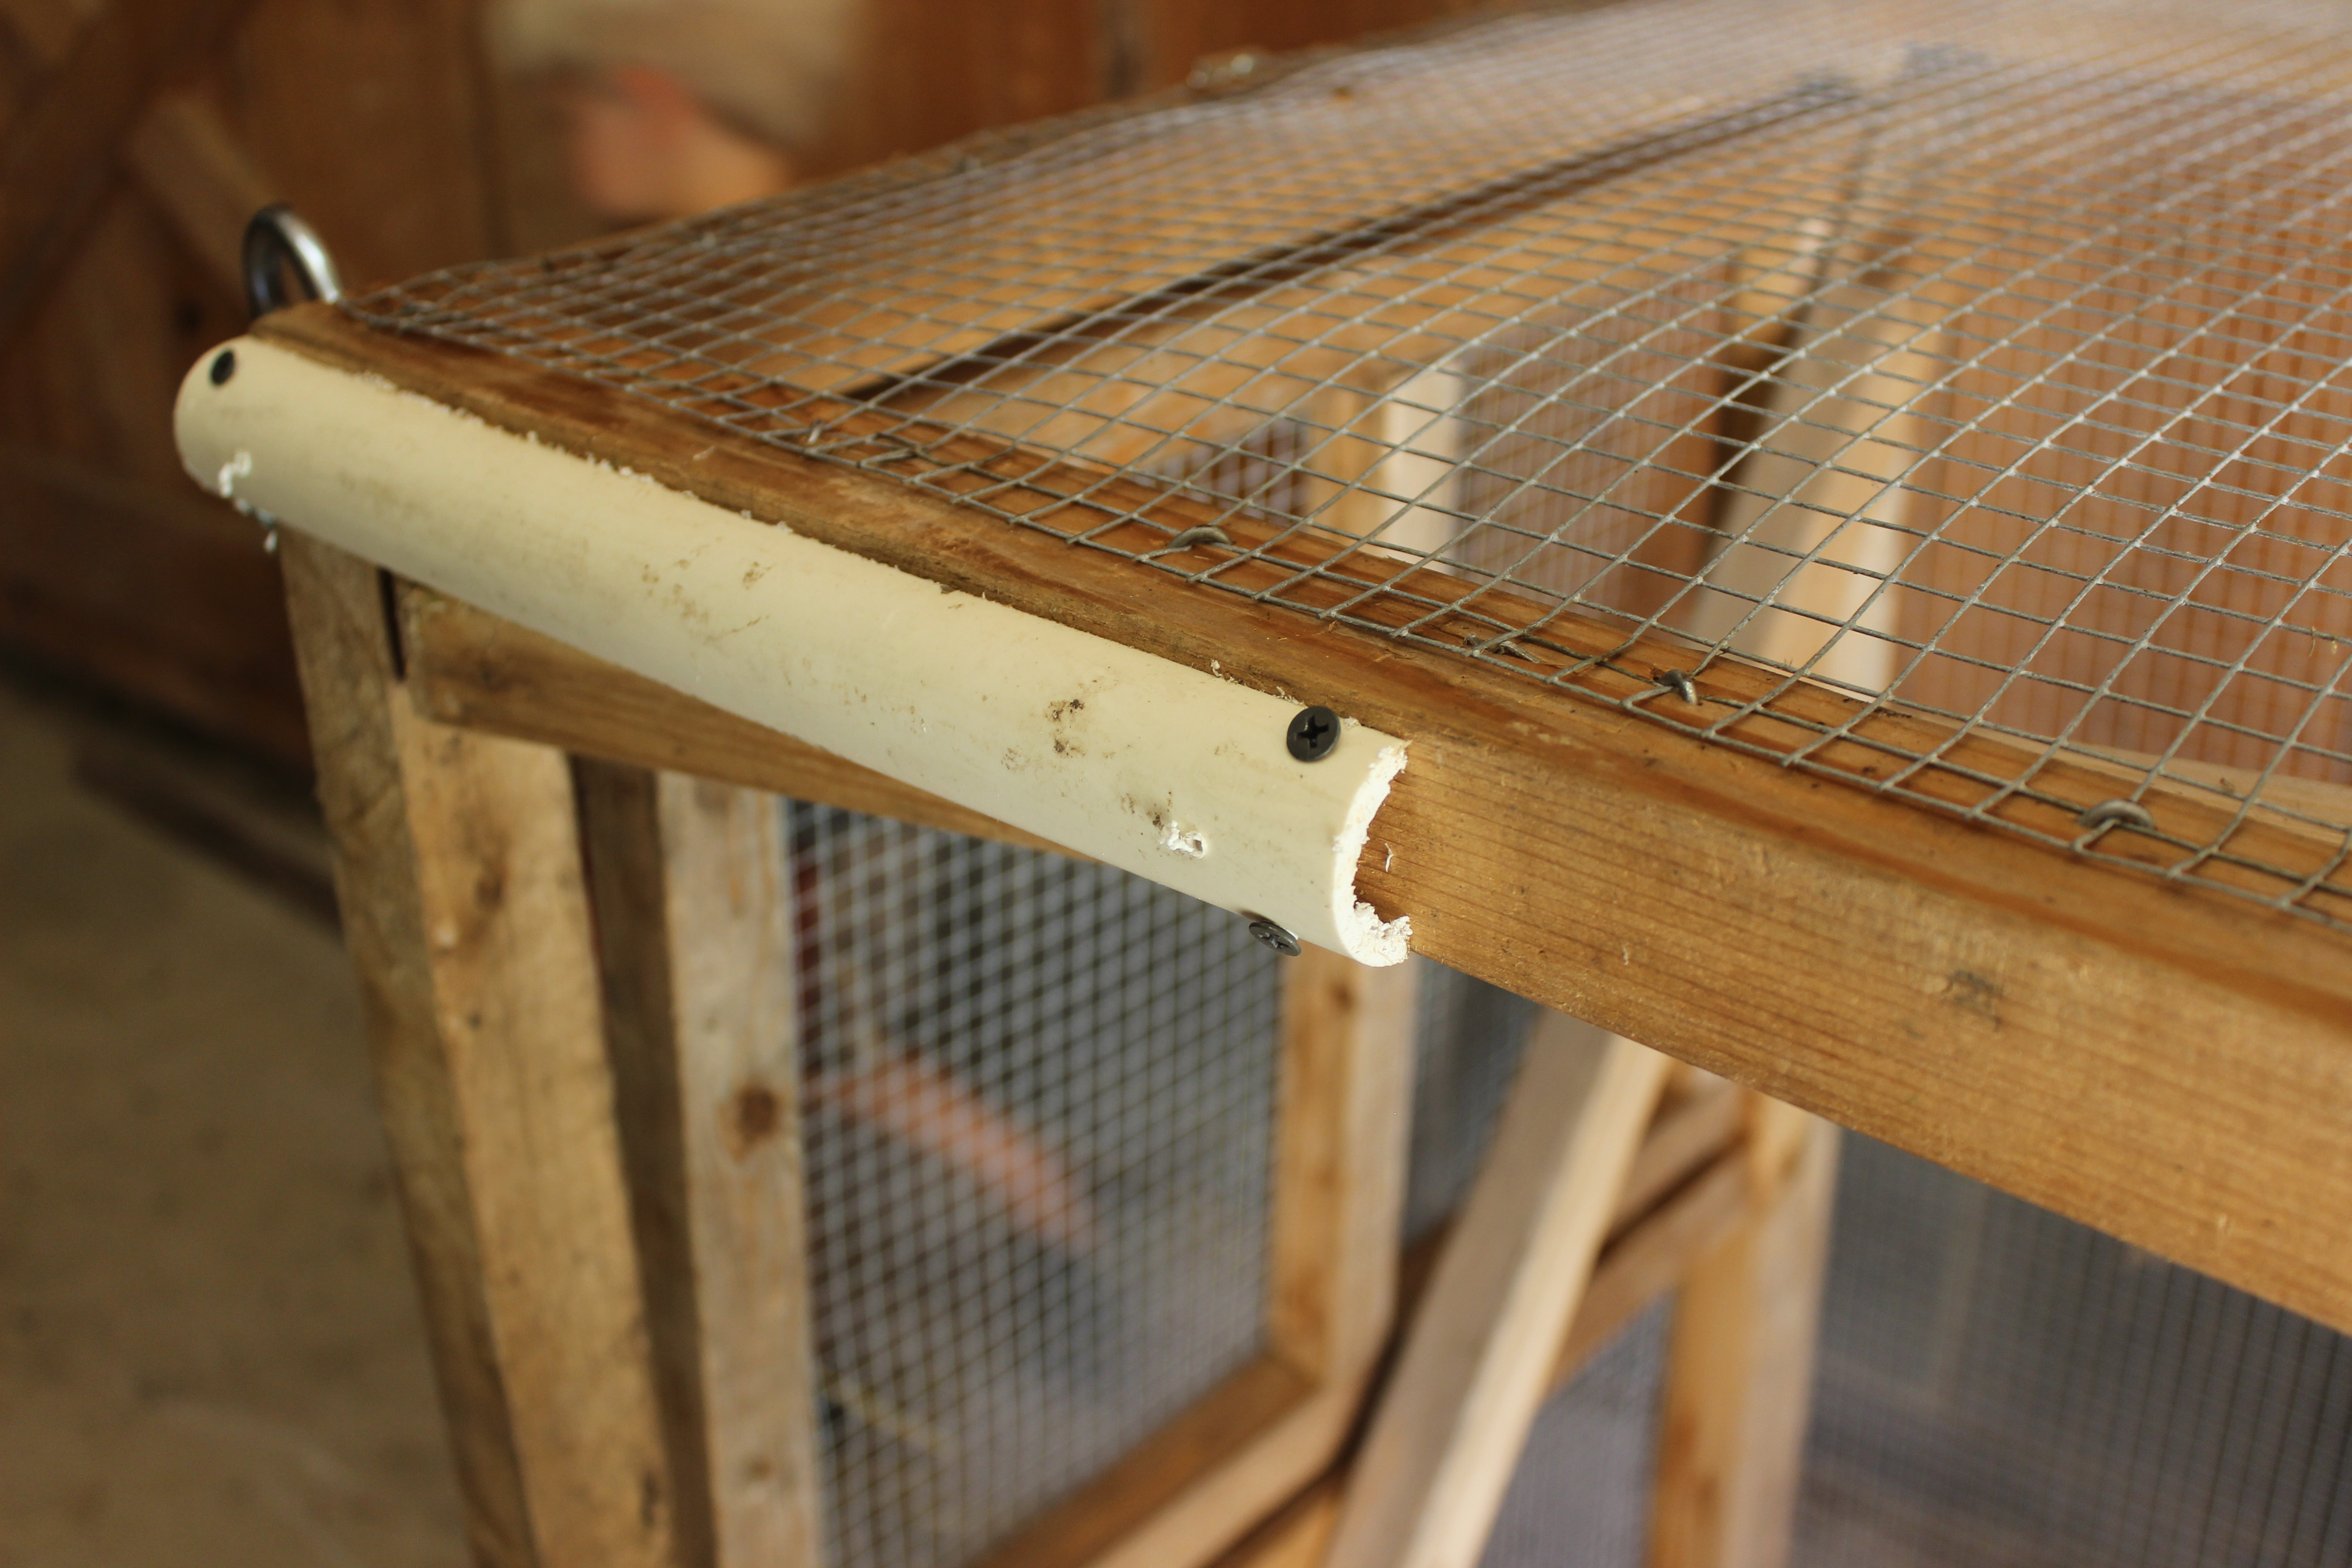 Diy Chicken Tractor For Less Than 200 Abundant Permaculture How To Install Surfacemounted Wiring And Conduit The Homestead Img 1129